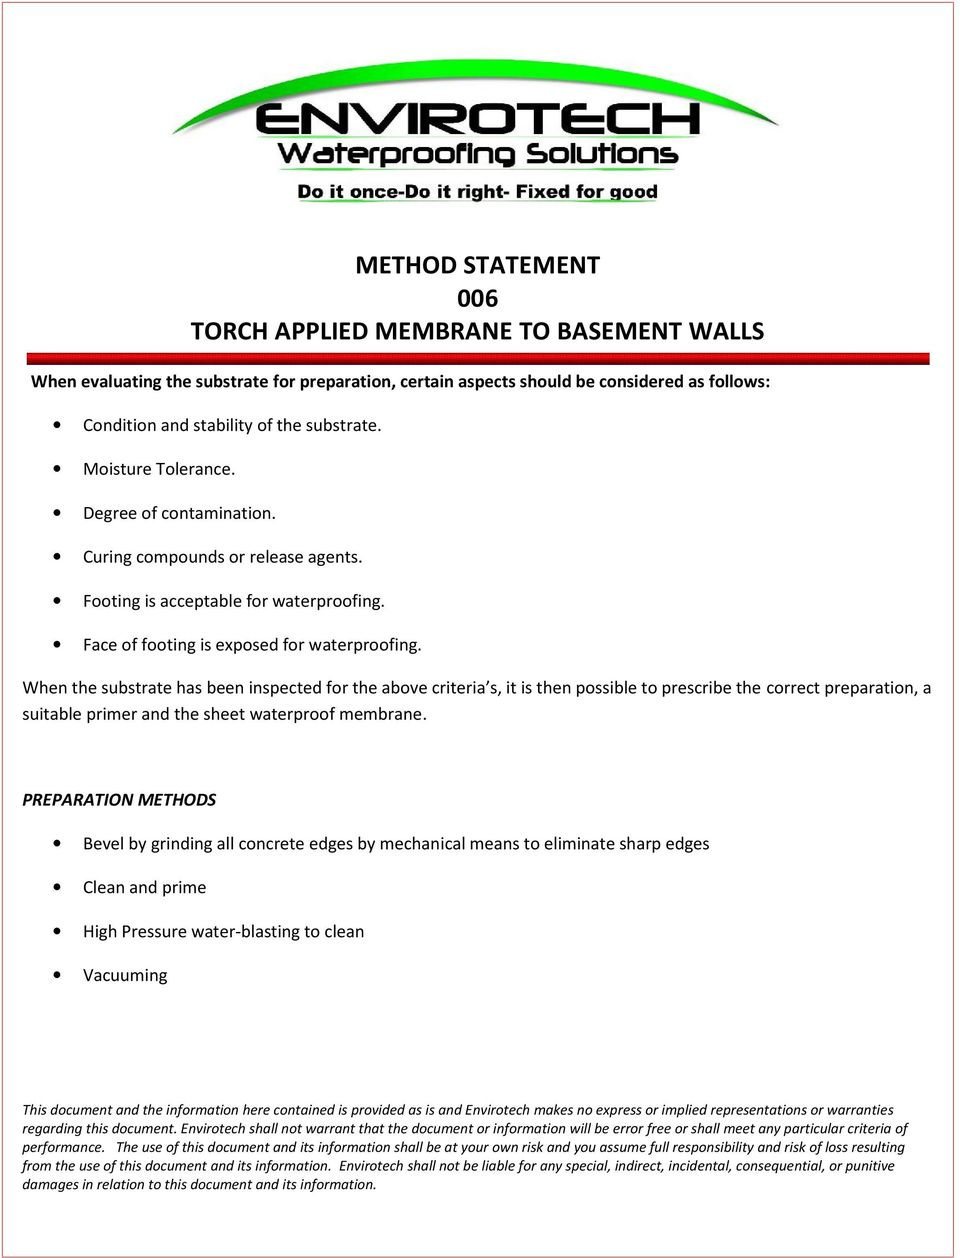 METHOD STATEMENT 006 TORCH APPLIED MEMBRANE TO BASEMENT WALLS - PDF